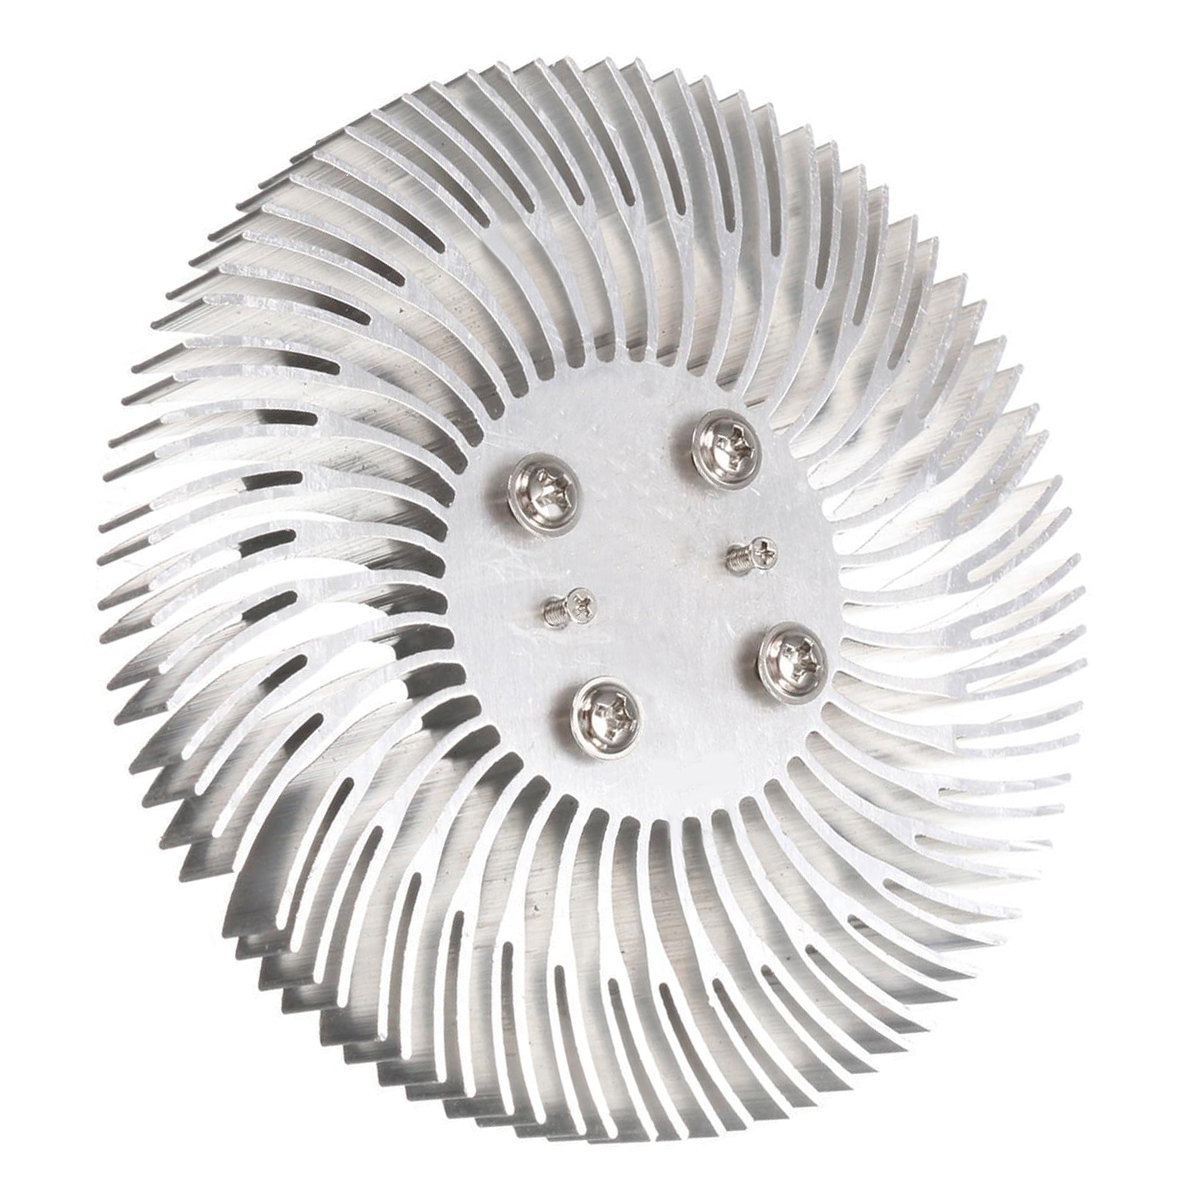 1pc Round Spiral Aluminum Heatsink Cooler Heat Sink Radiator Cooling Fin 90*10mm For 10W High Power LED Lamp With Screws Mayitr 2017 new 150x80x20mm pure copper heatsink radiator skiving fin heat sink for electronic chip led power amplifier cooling cooler